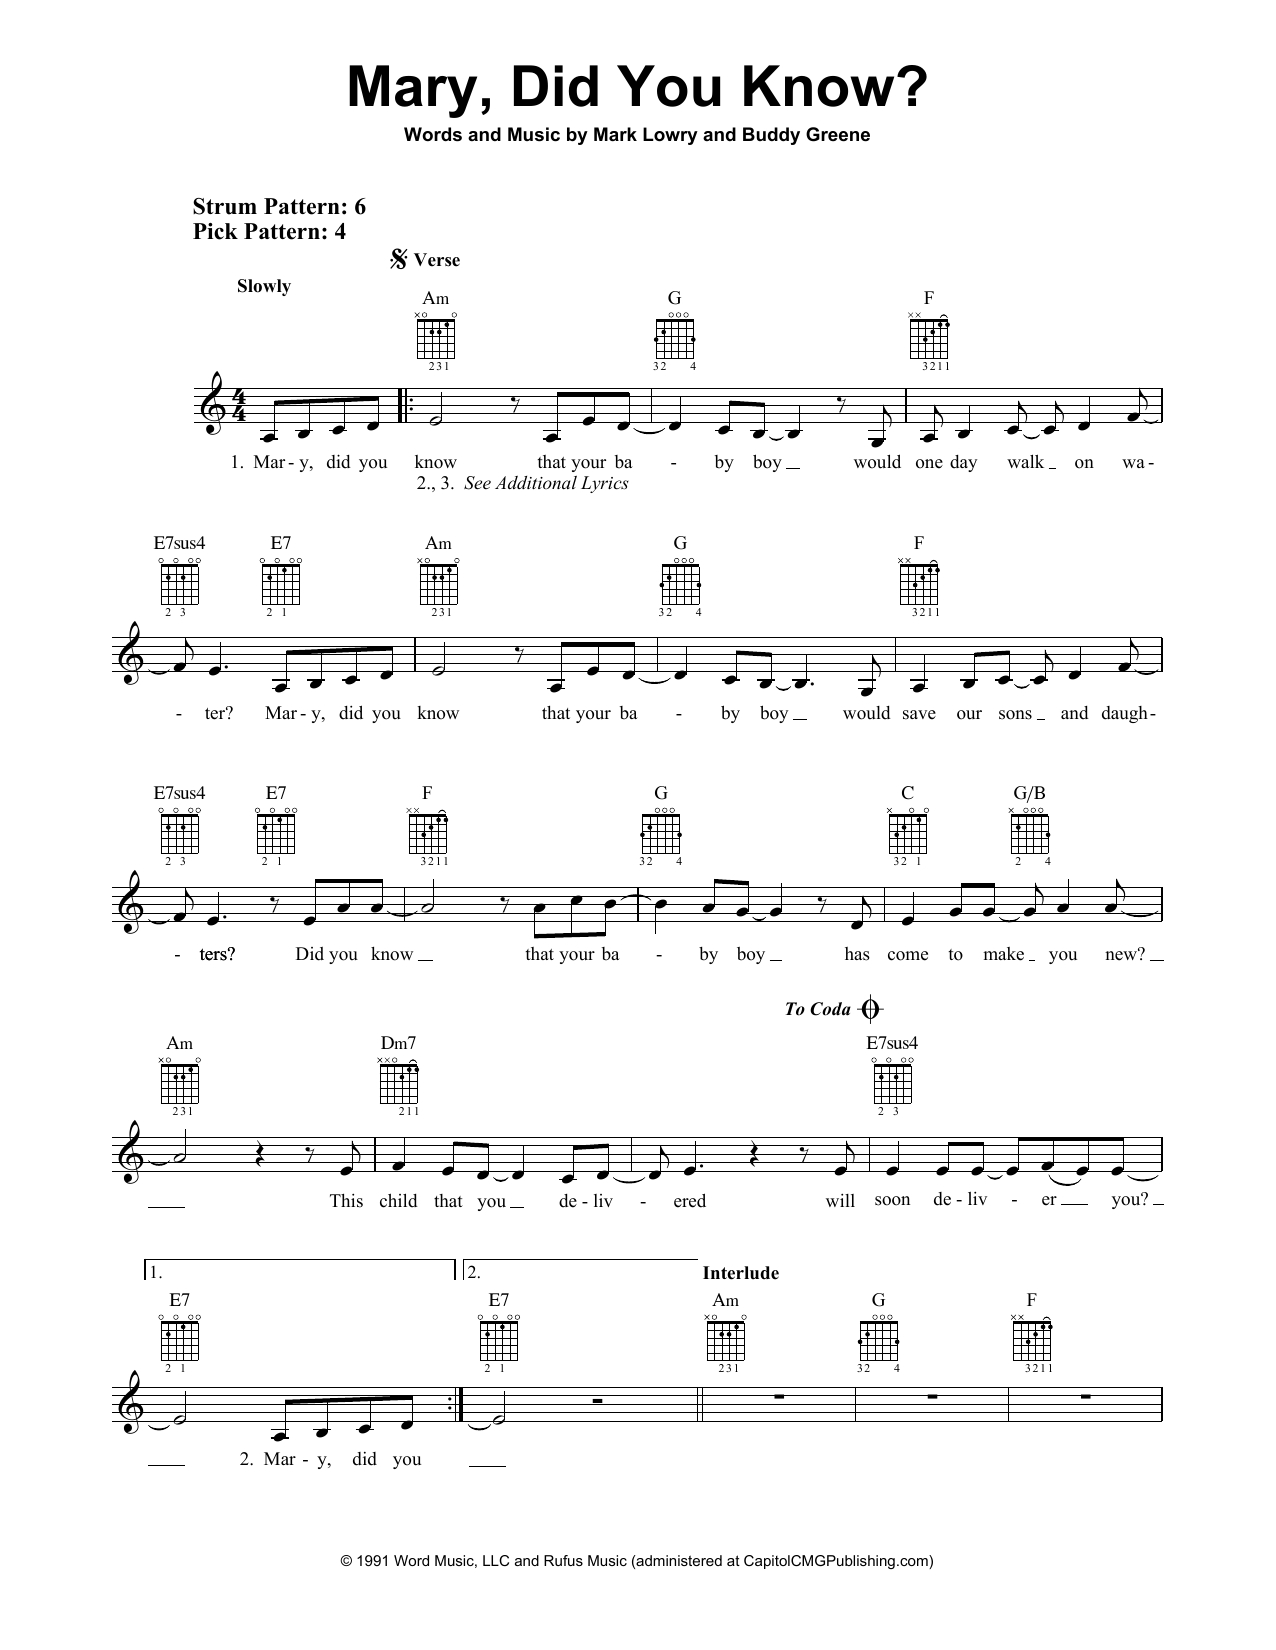 Mary Did You Know Chords Sheet Music Digital Files To Print Licensed Kathy Mattea Digital